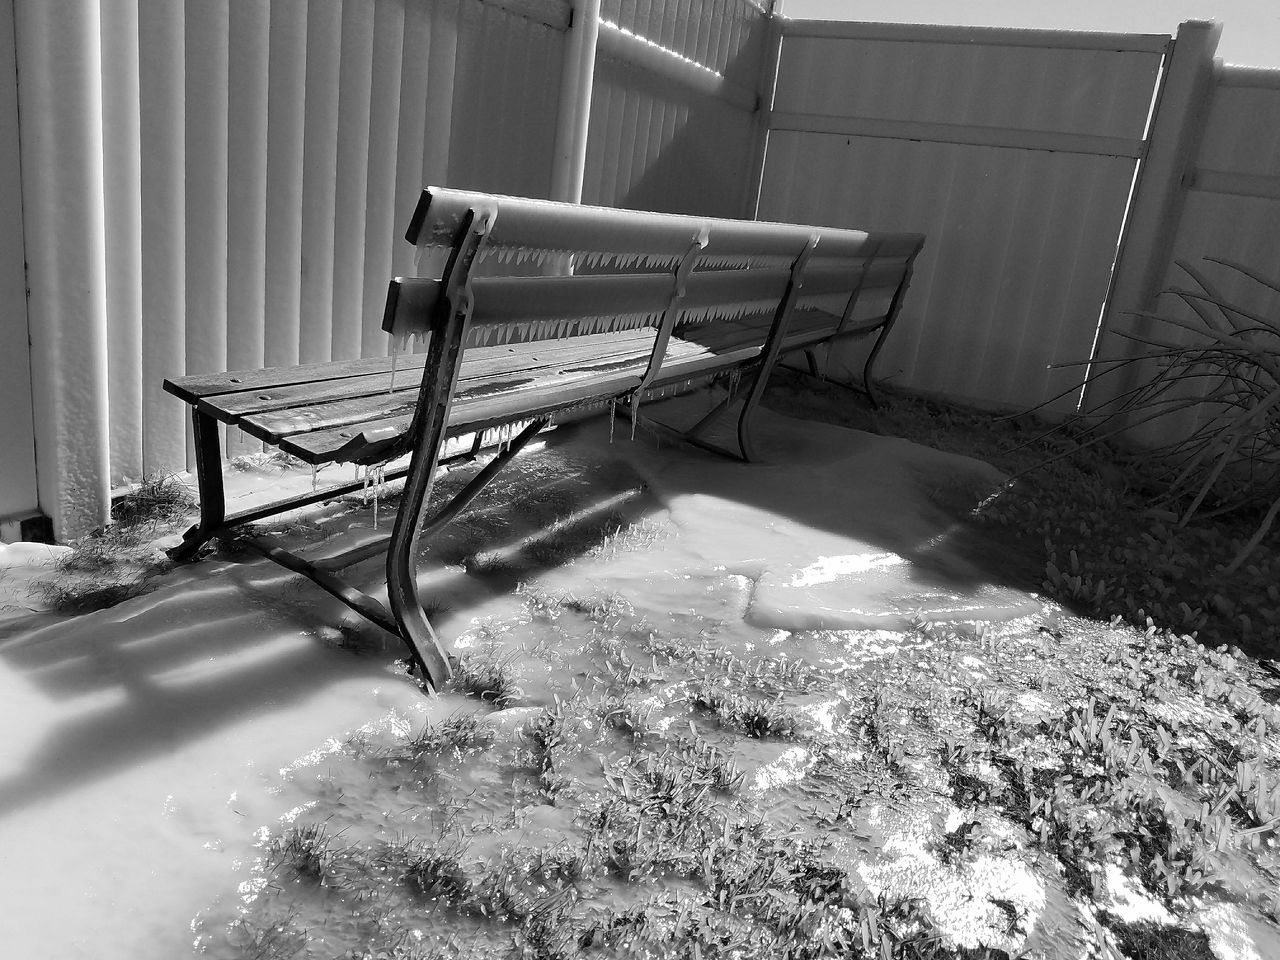 Fortheloveofblackandwhite Bench Lakeshore Ice Shadow Play Light Up Your Life Scenics Black And White Photography Shades Of Grey From My Perspective Mobile Photography Outdoors Day Sunlight Shadow No People Icicles Cold Temperature Black And White Black & White Bnw Black&white